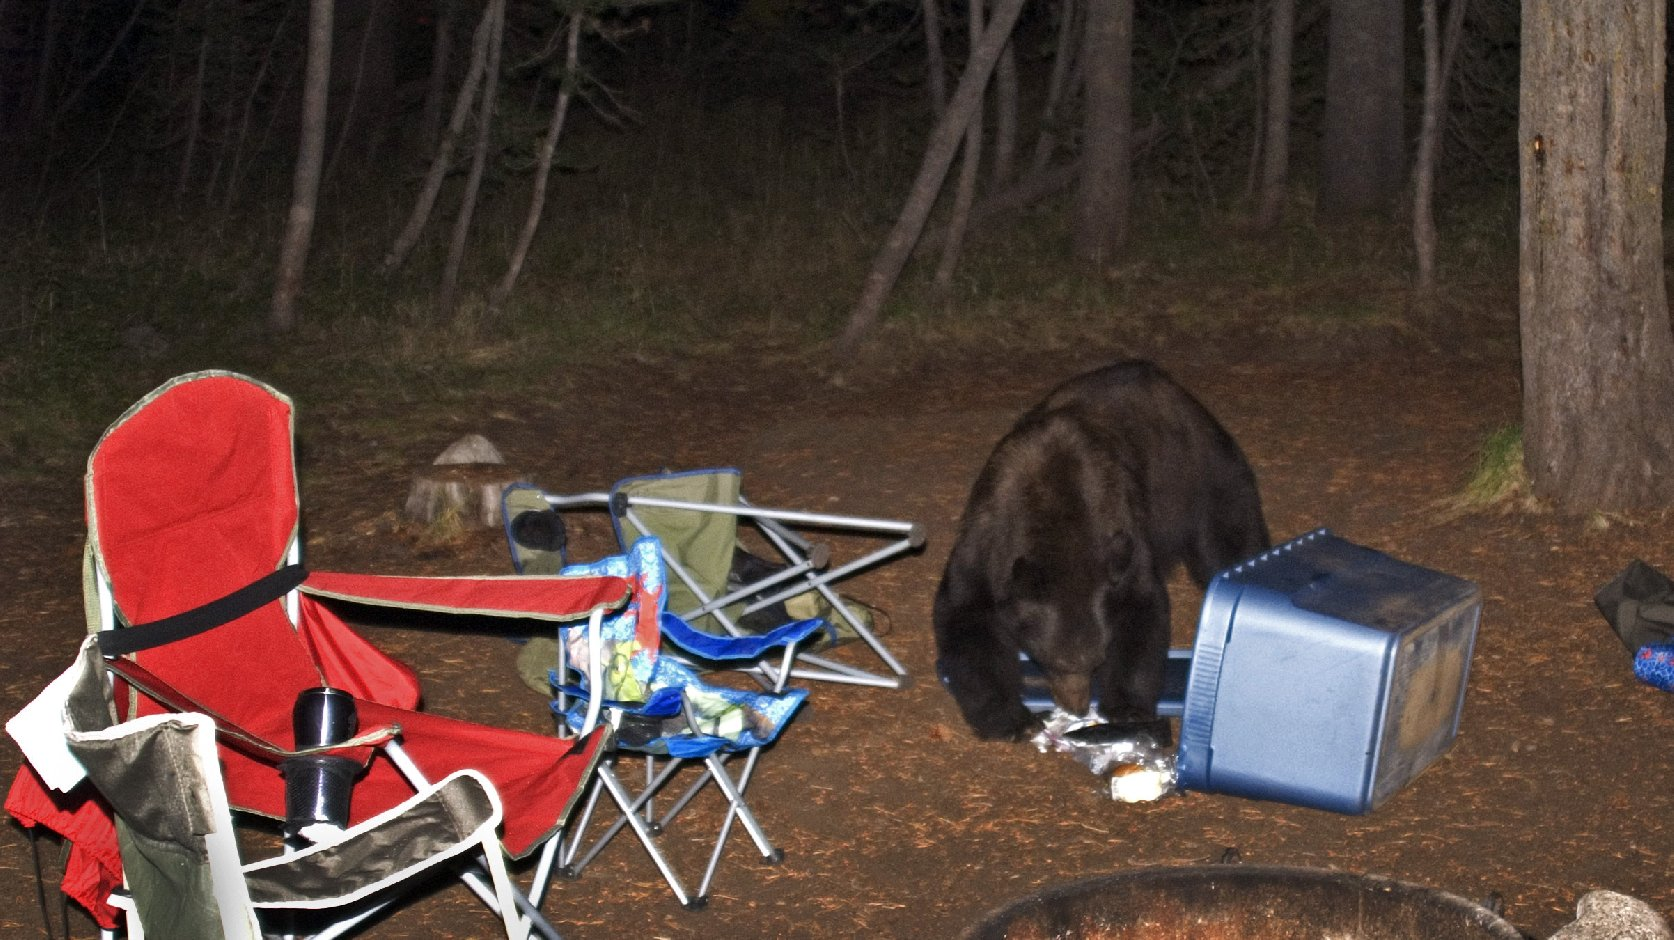 Not as cute as Yogi's pic-a-nic thievery: Food left out at a campsite in Yosemite National Park is likely to attract bears like this one, seen scavenging at Tuolumne Meadows Campground in 2008. Photo: Courtesy of Erica Crawford